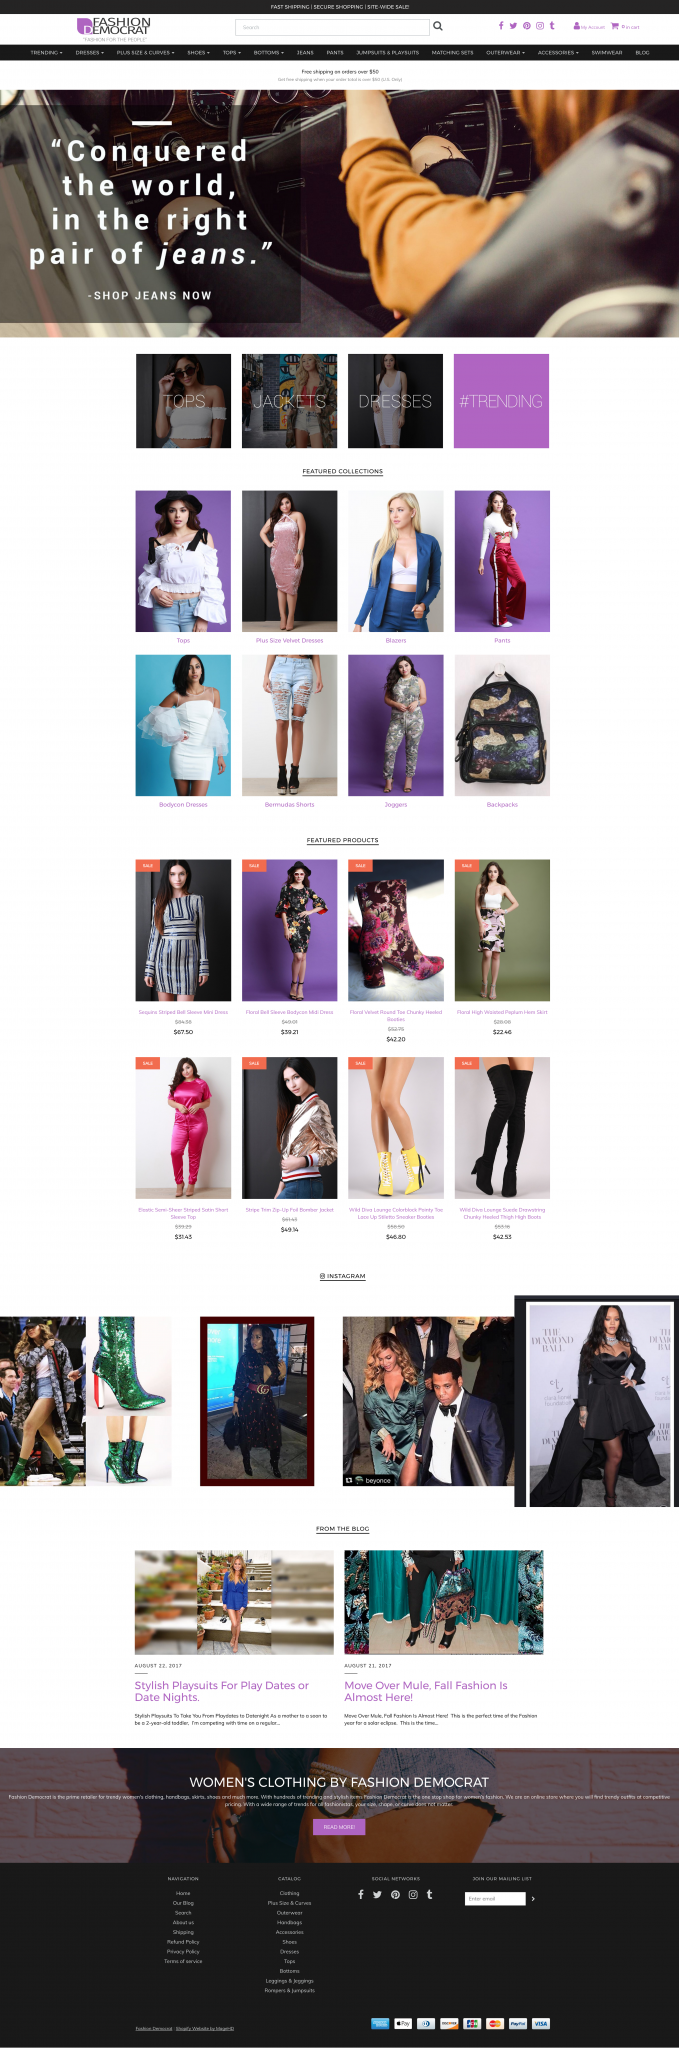 Fashion Democrat Shopify Website Design